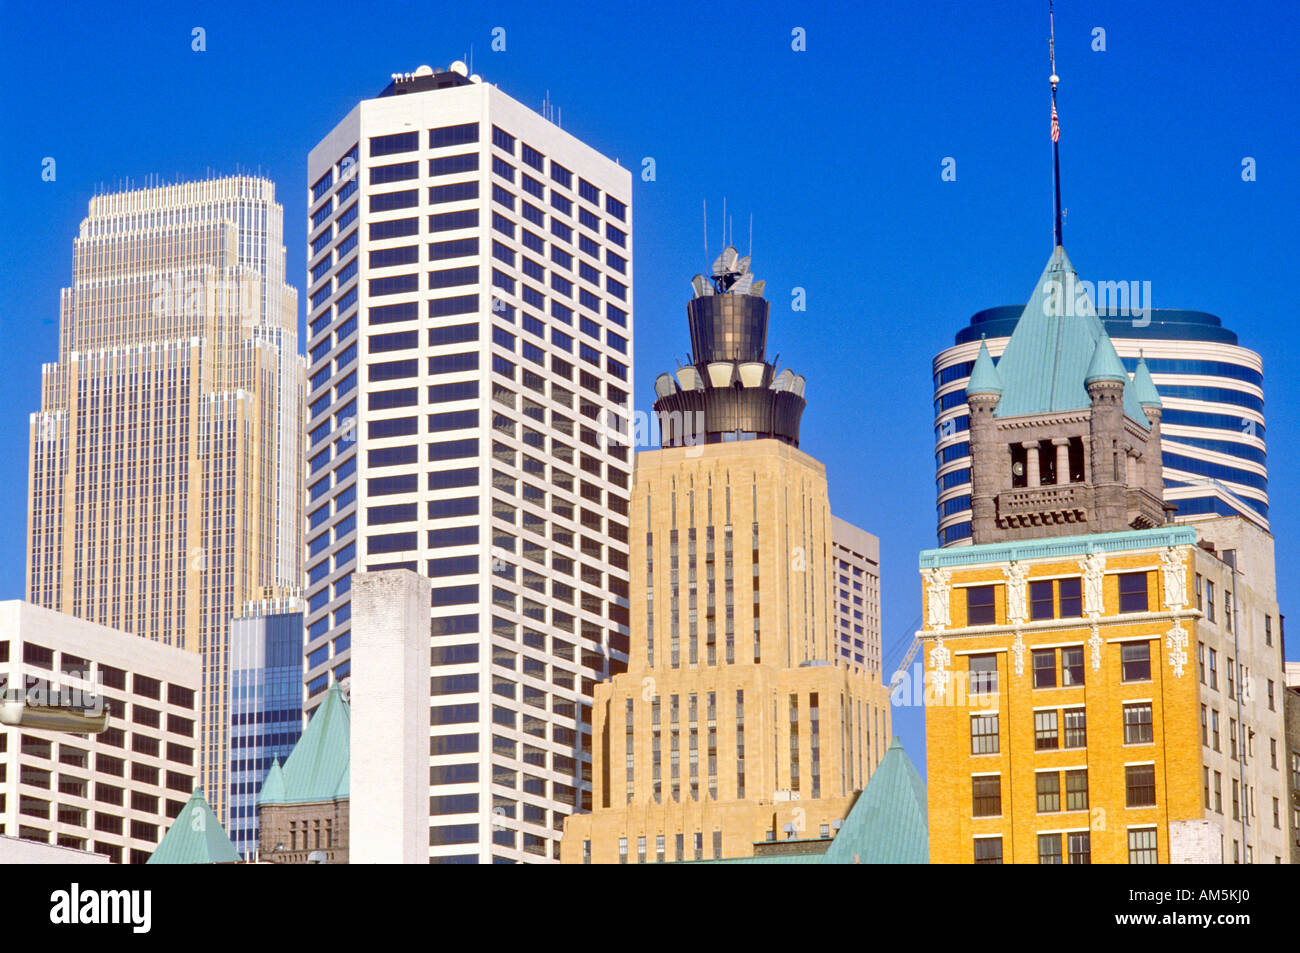 Morning view of Minneapolis MN skyline - Stock Image